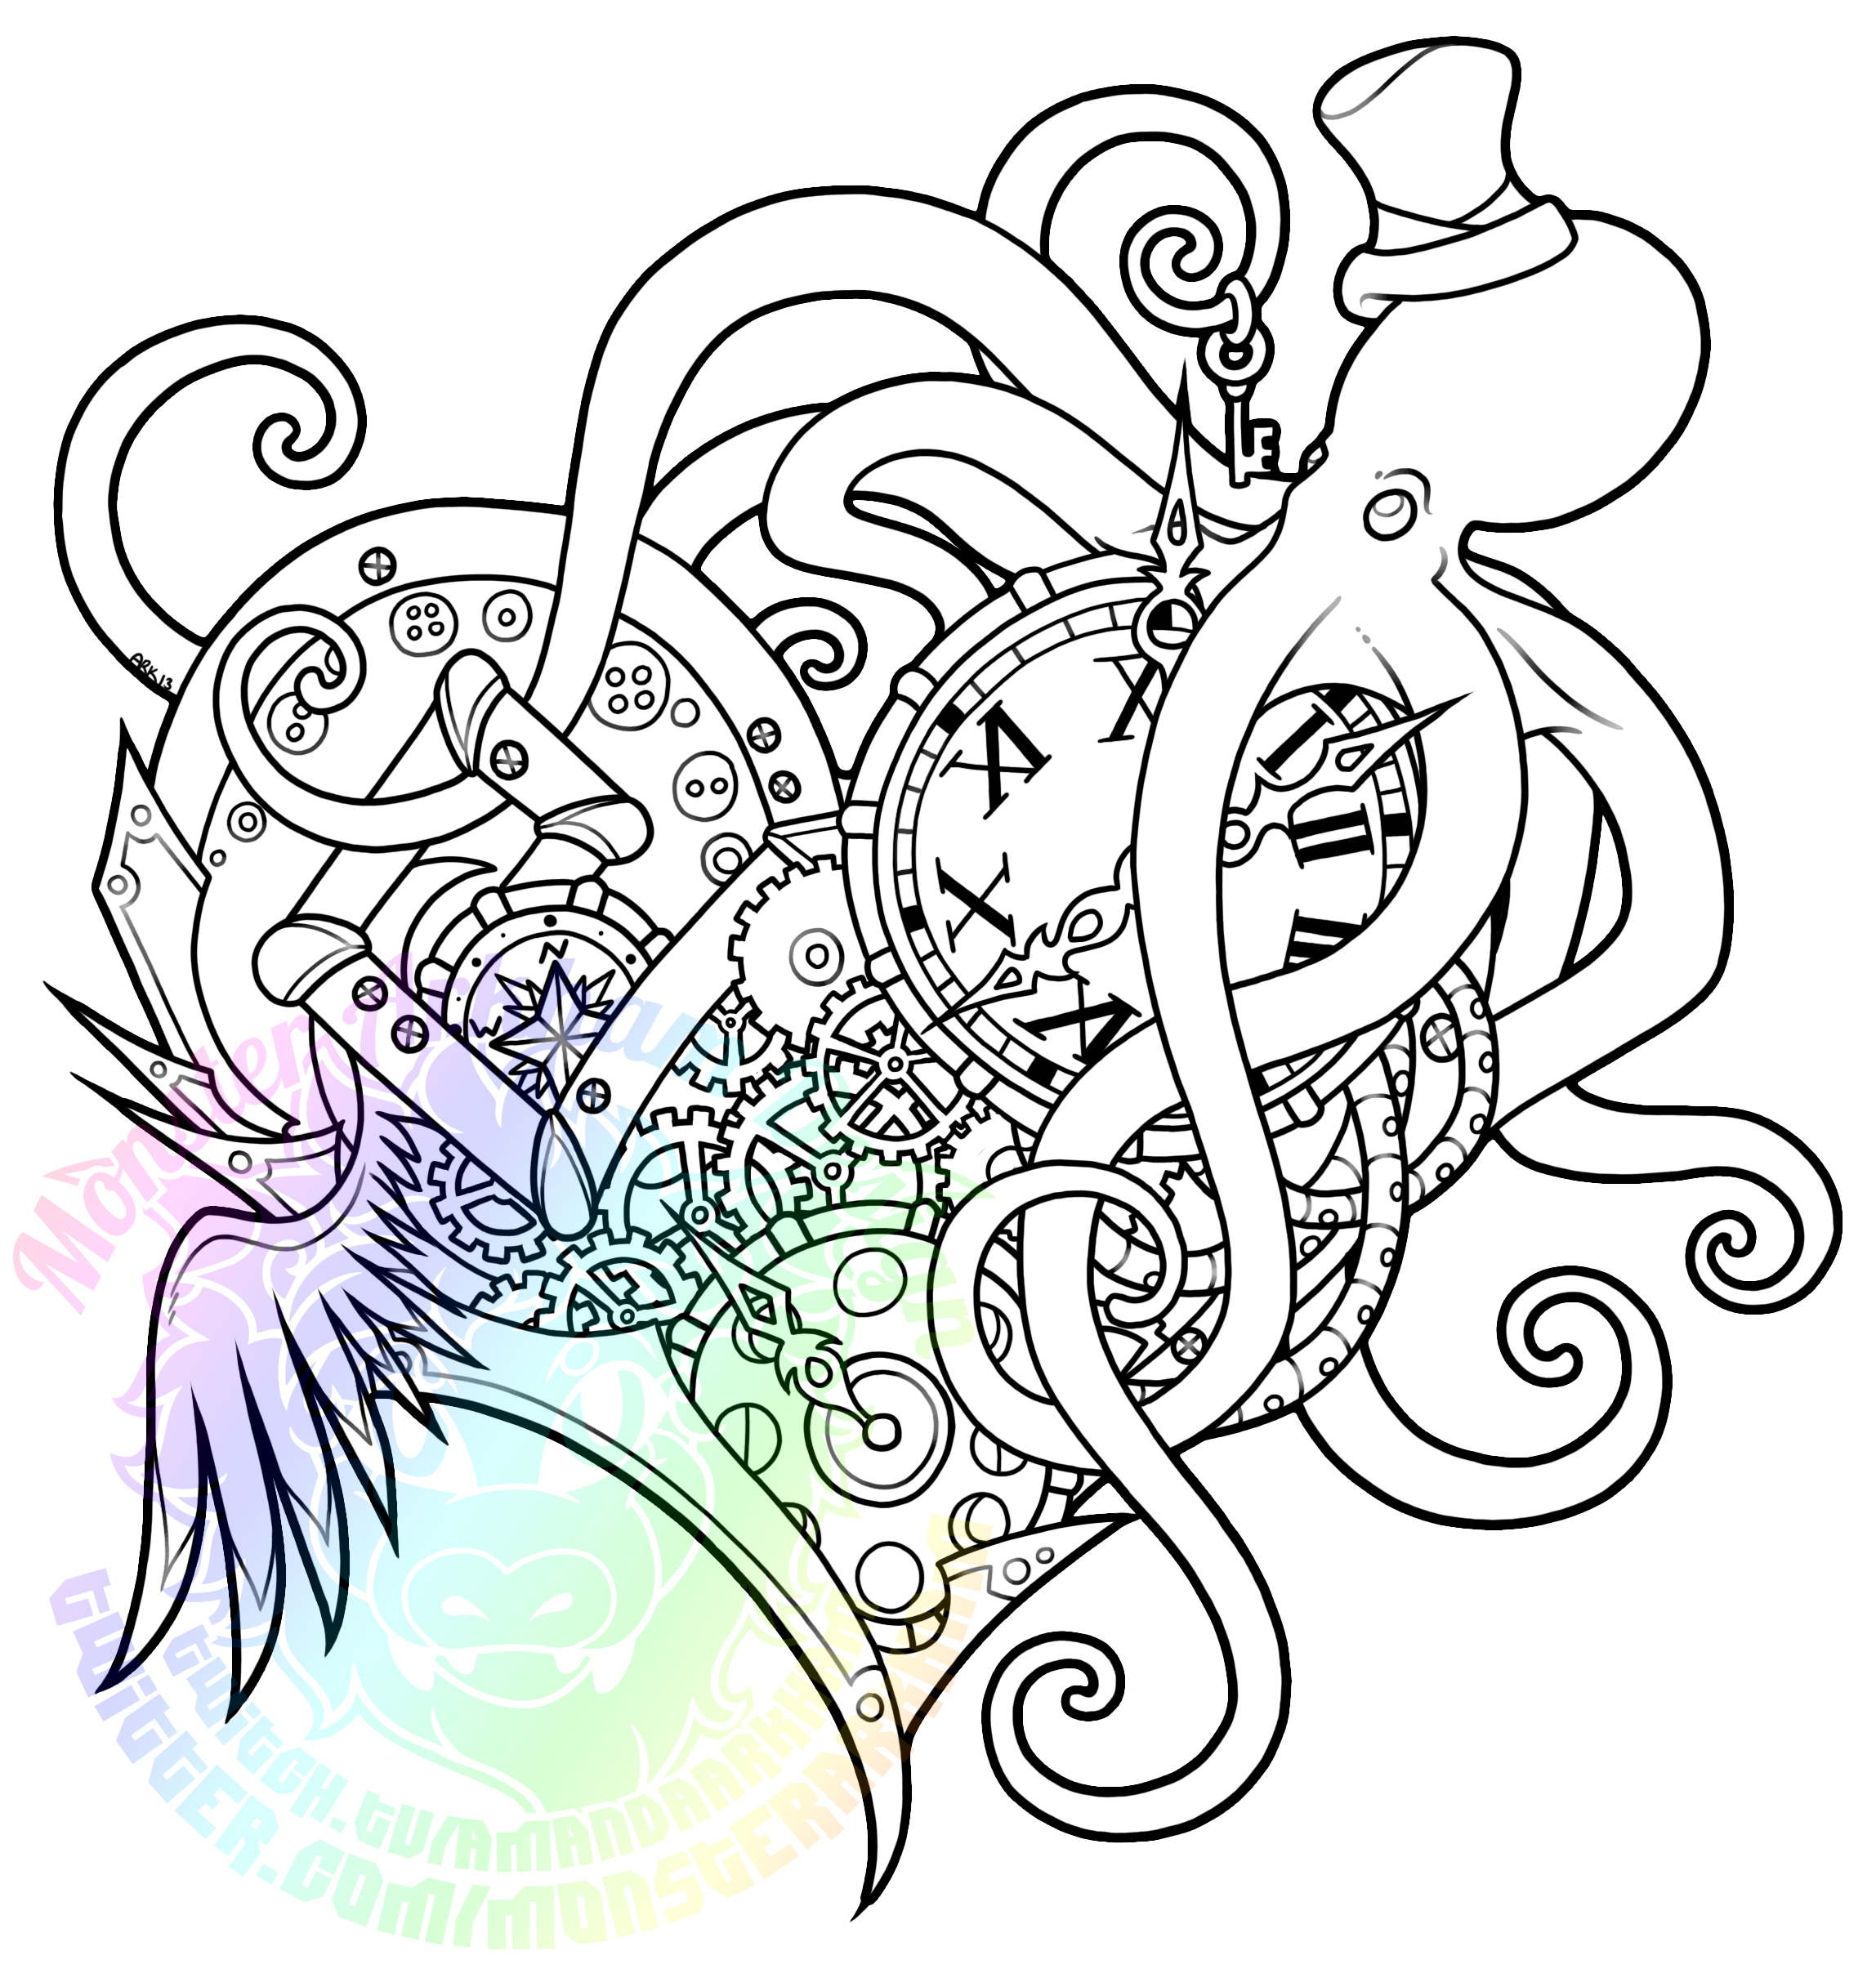 Love coloring page   Free Printable Coloring Pages   1050x1000